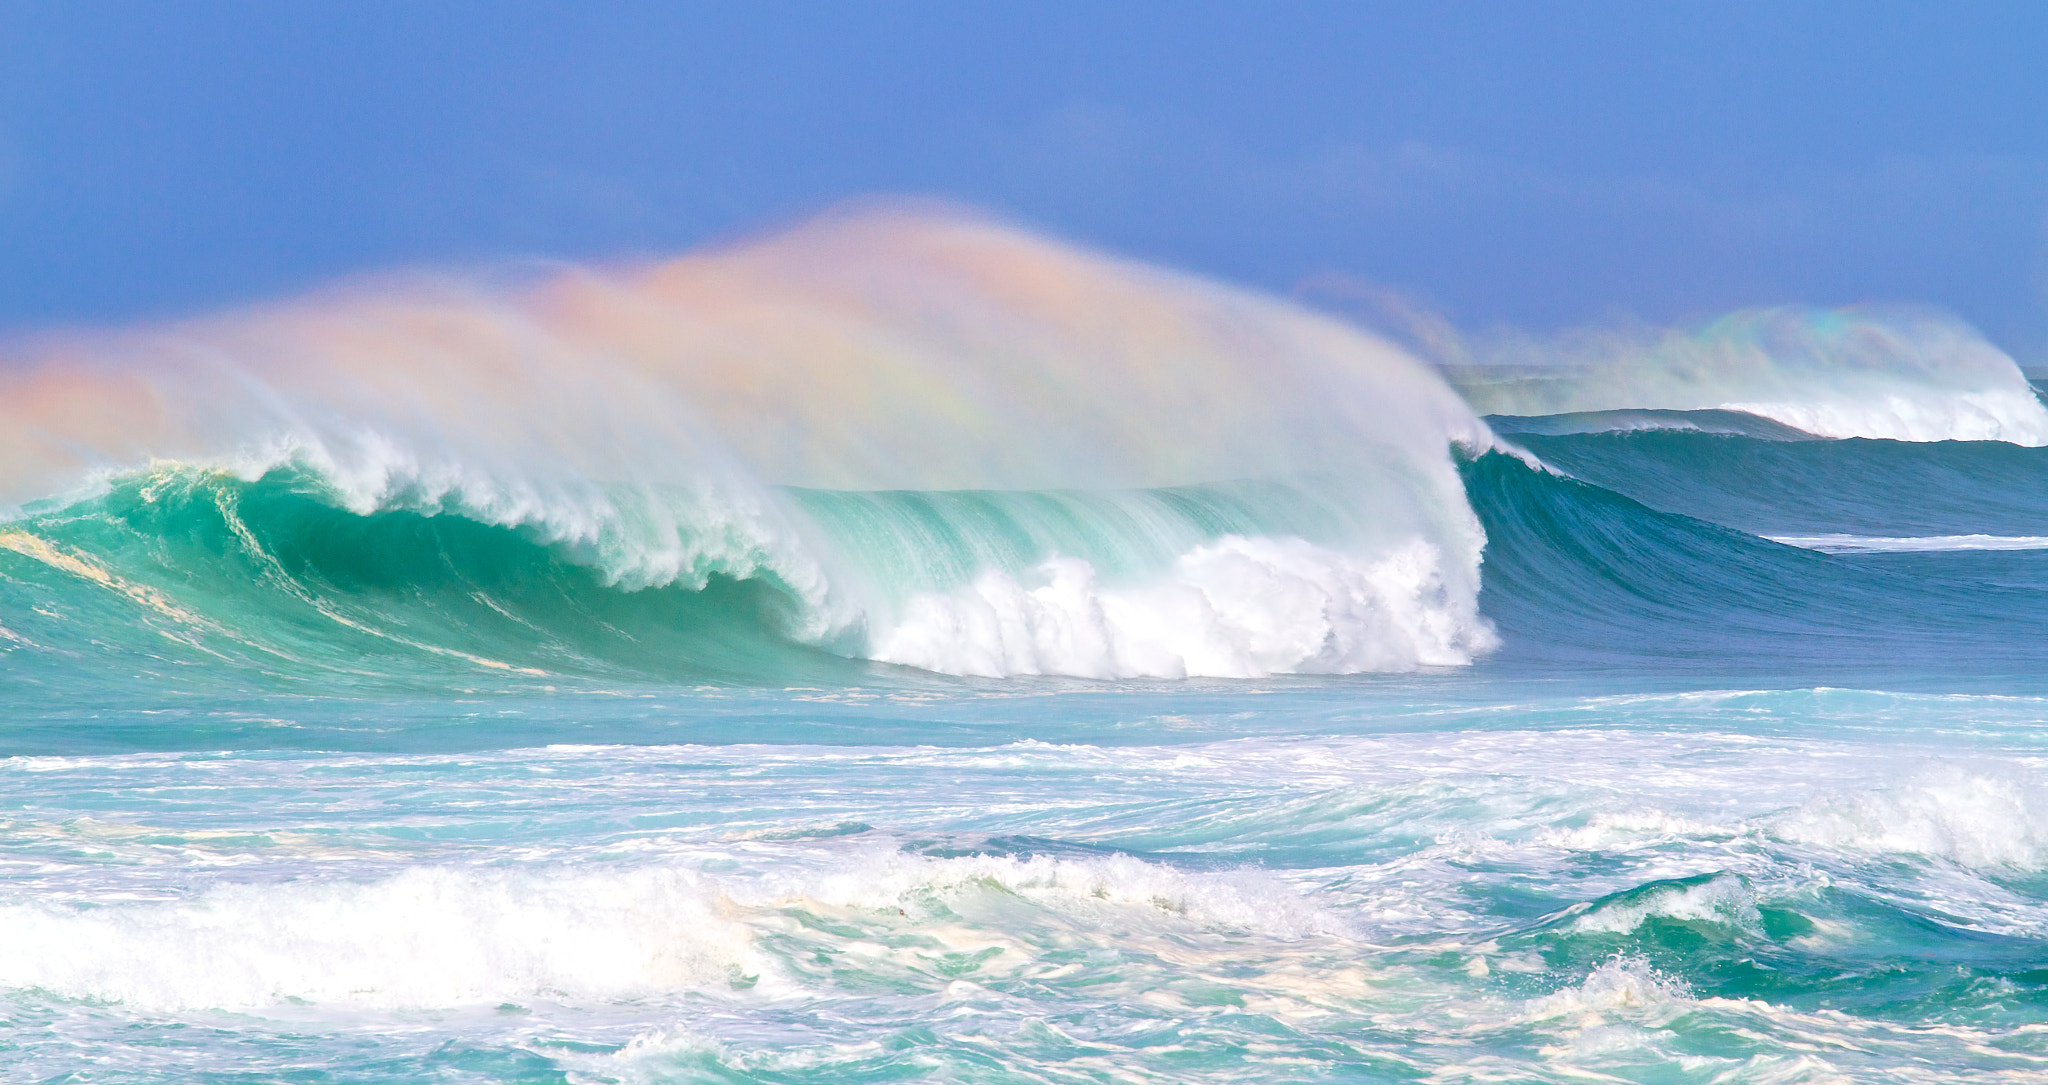 Photograph Iridescent Waves - I by Alan Fitzsimmons on 500px